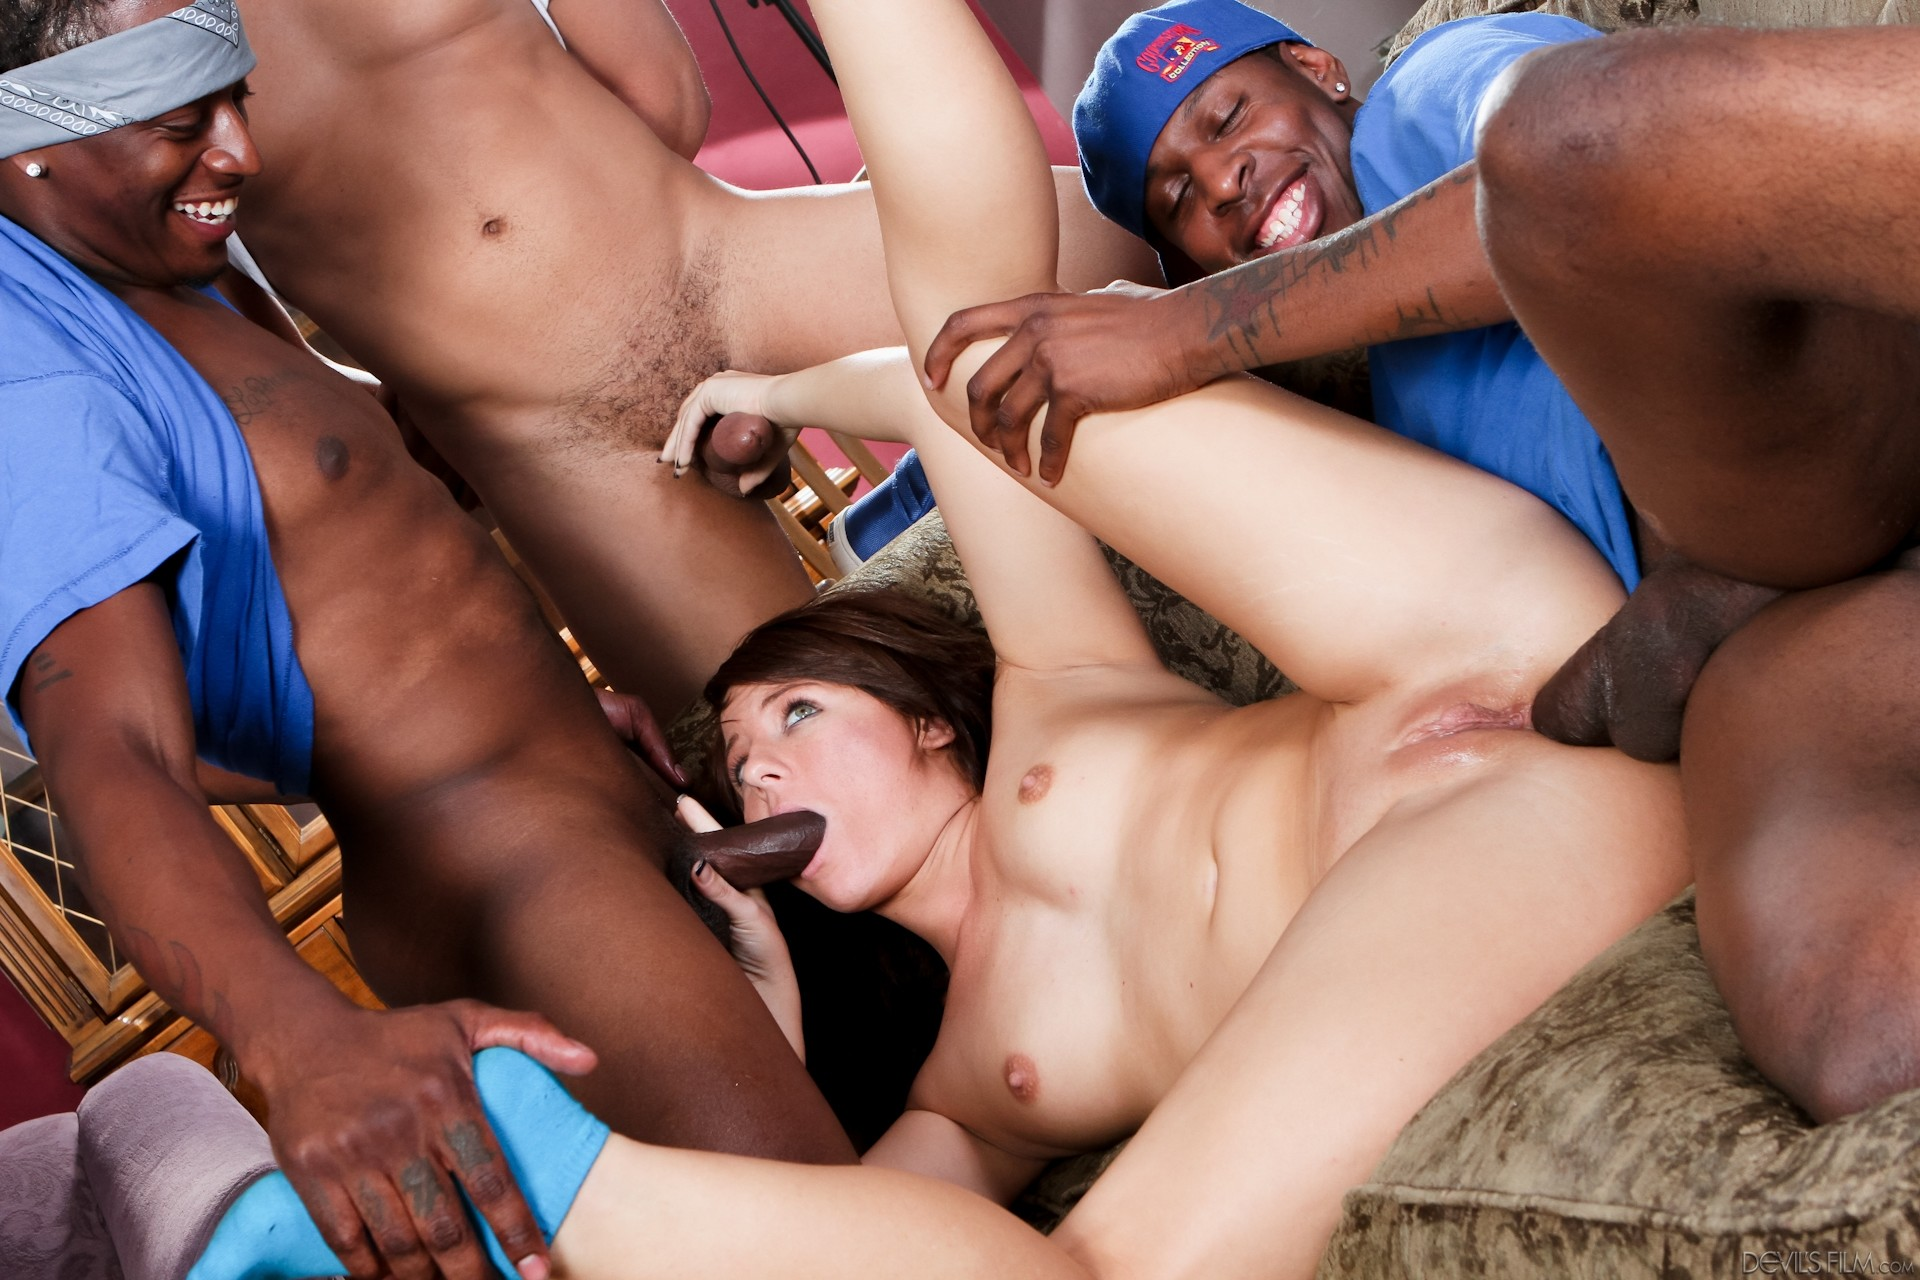 black-gang-bang-pono-free-videos-panties-for